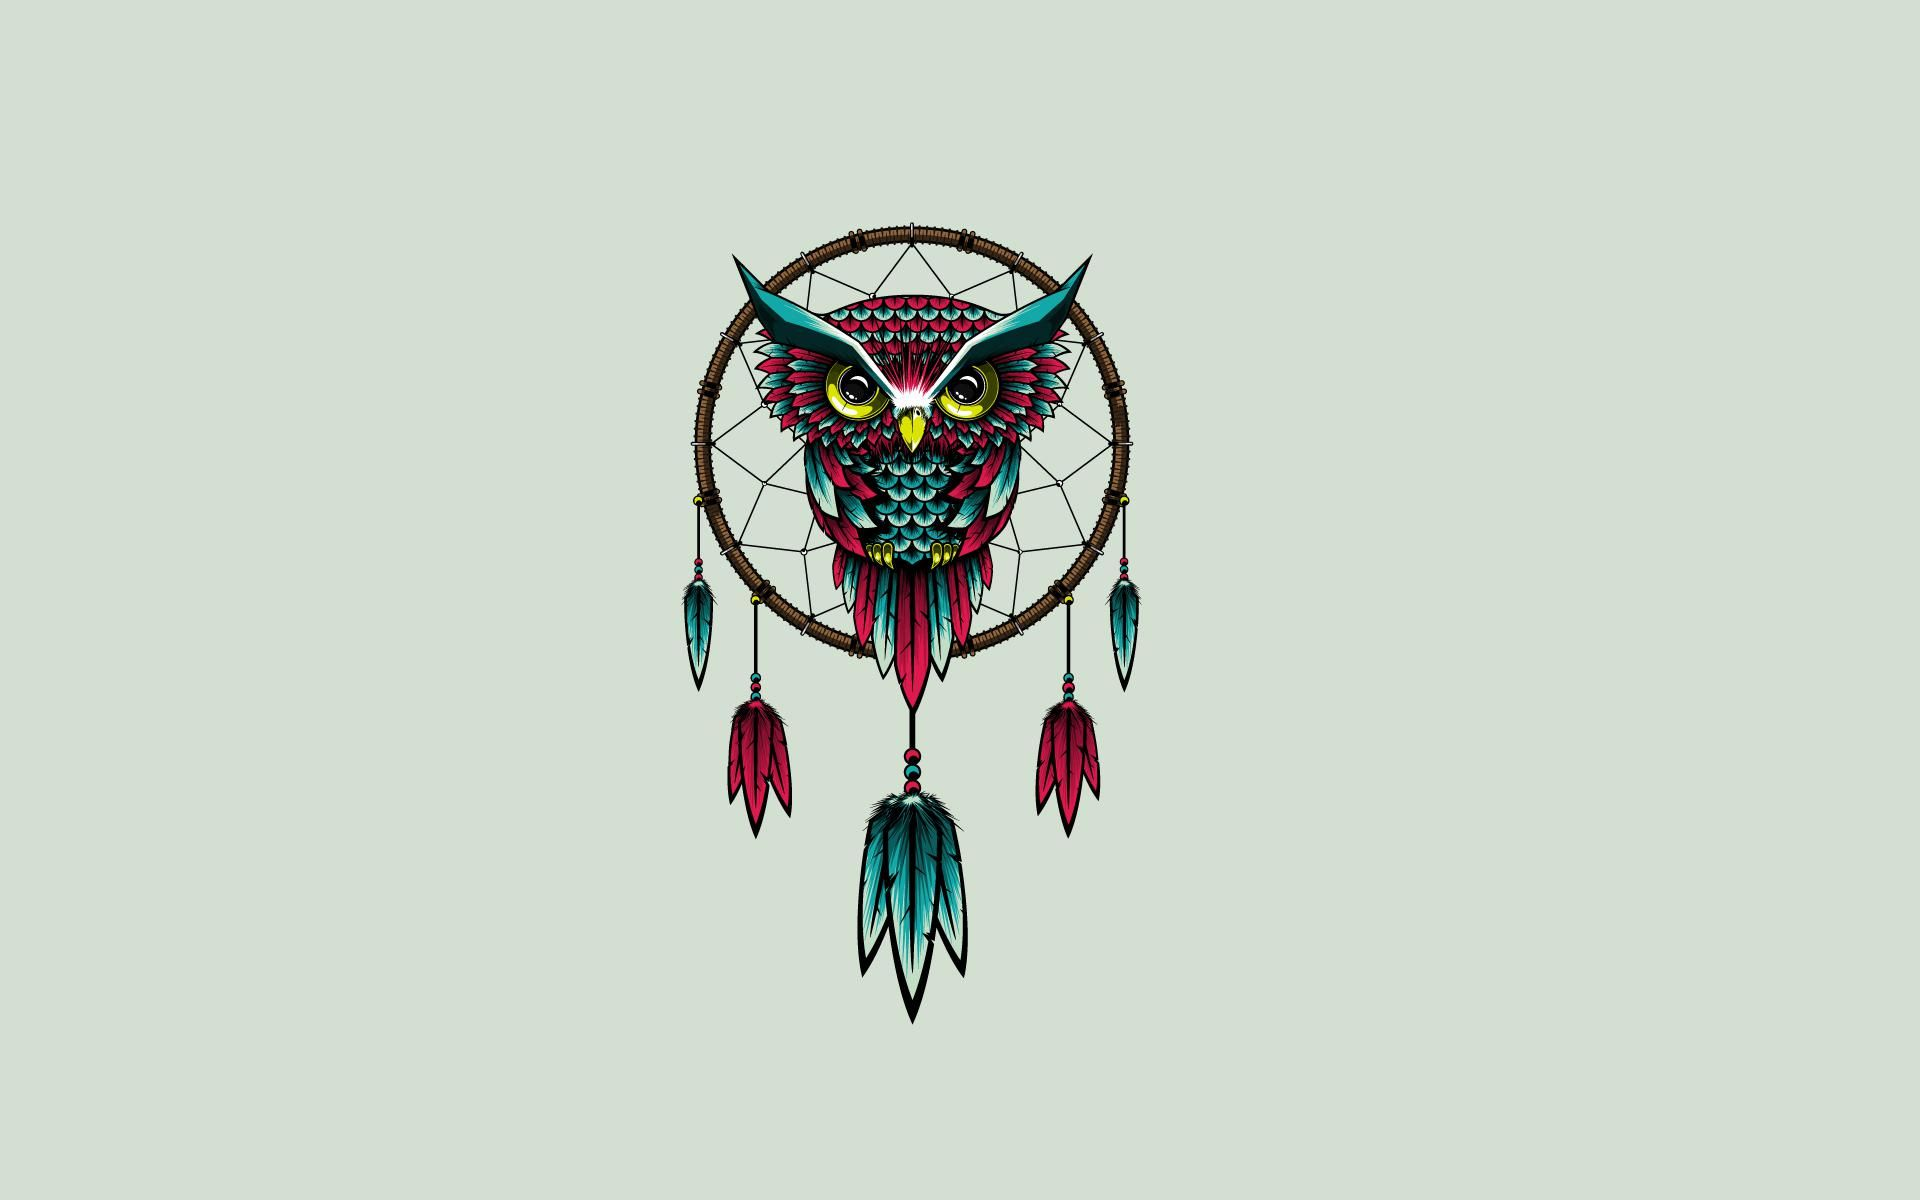 Owl Bird Dreamcatcher Art Hd Wallpaper Get It Now Cute Owls Wallpaper Owl Wallpaper Dreamcatcher Wallpaper